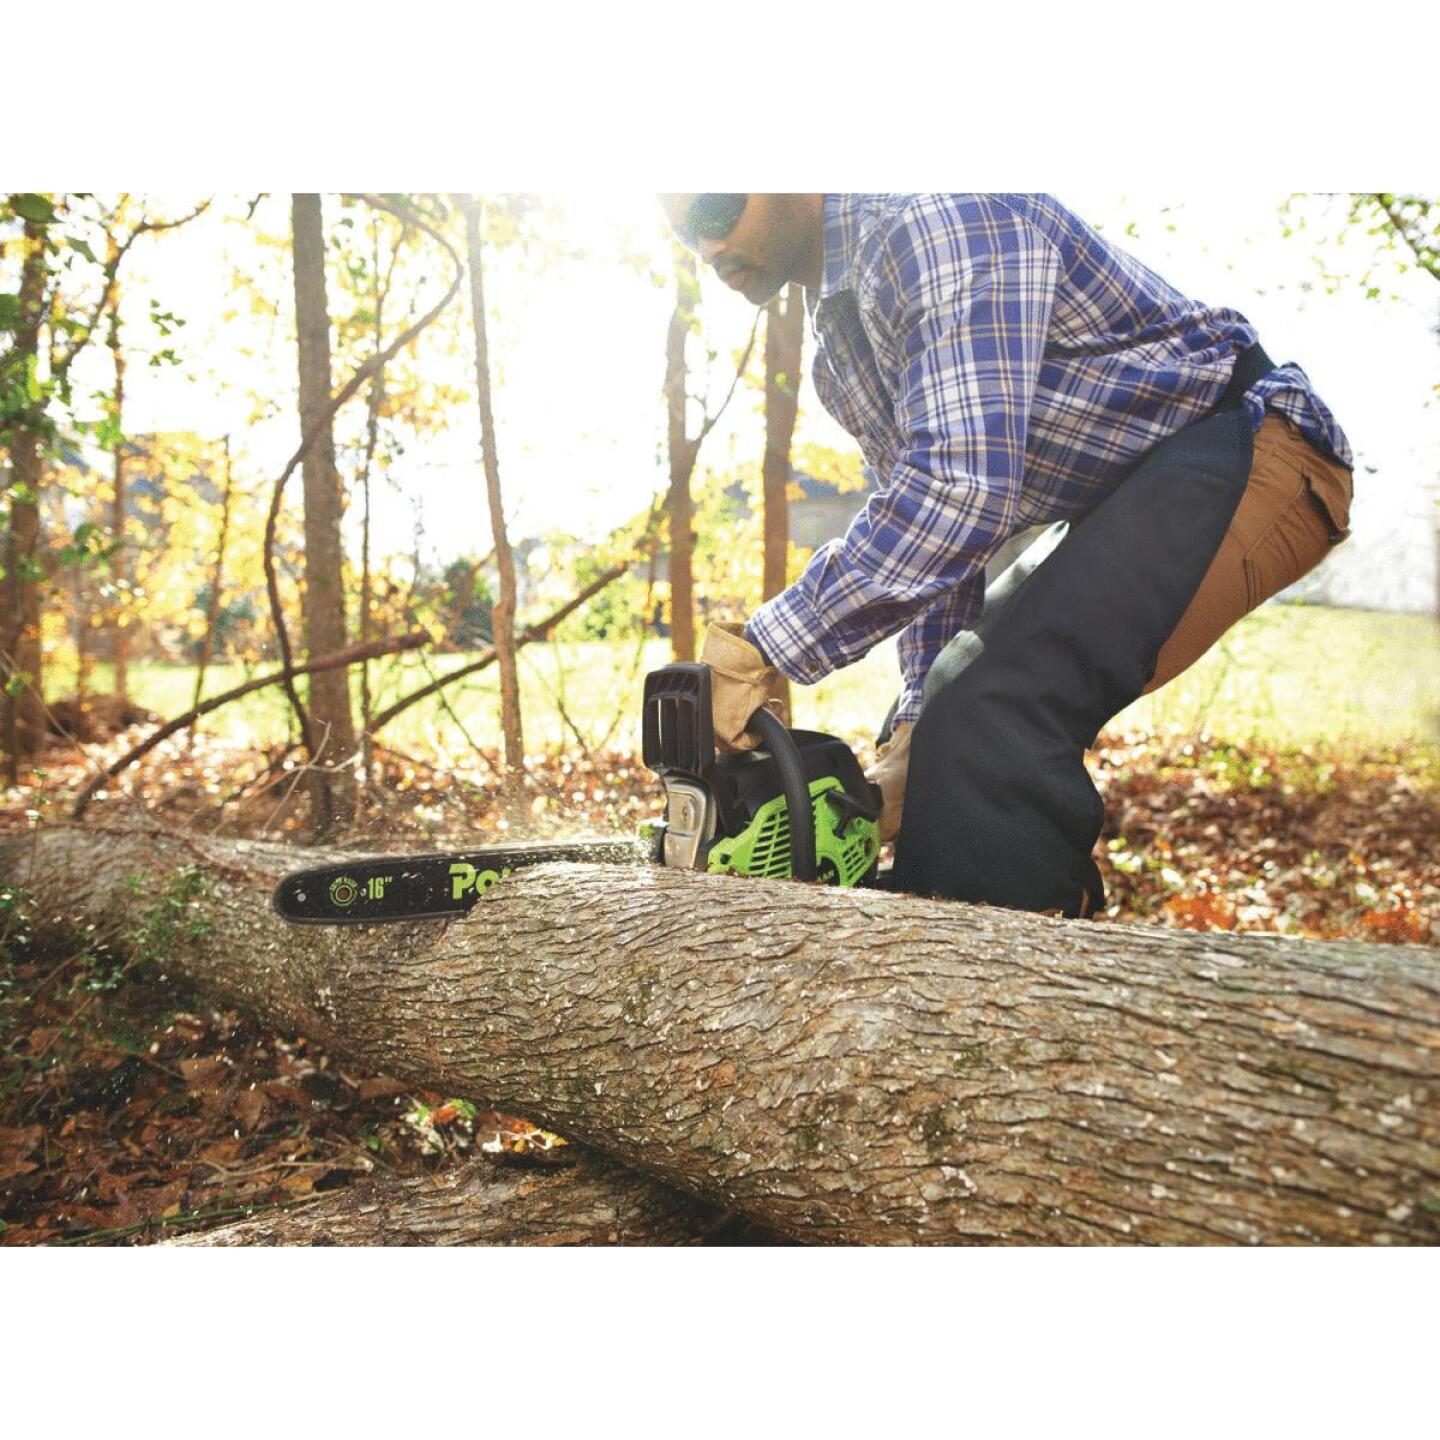 Poulan PL3816 16 In. 38 CC Gas Chainsaw Image 2